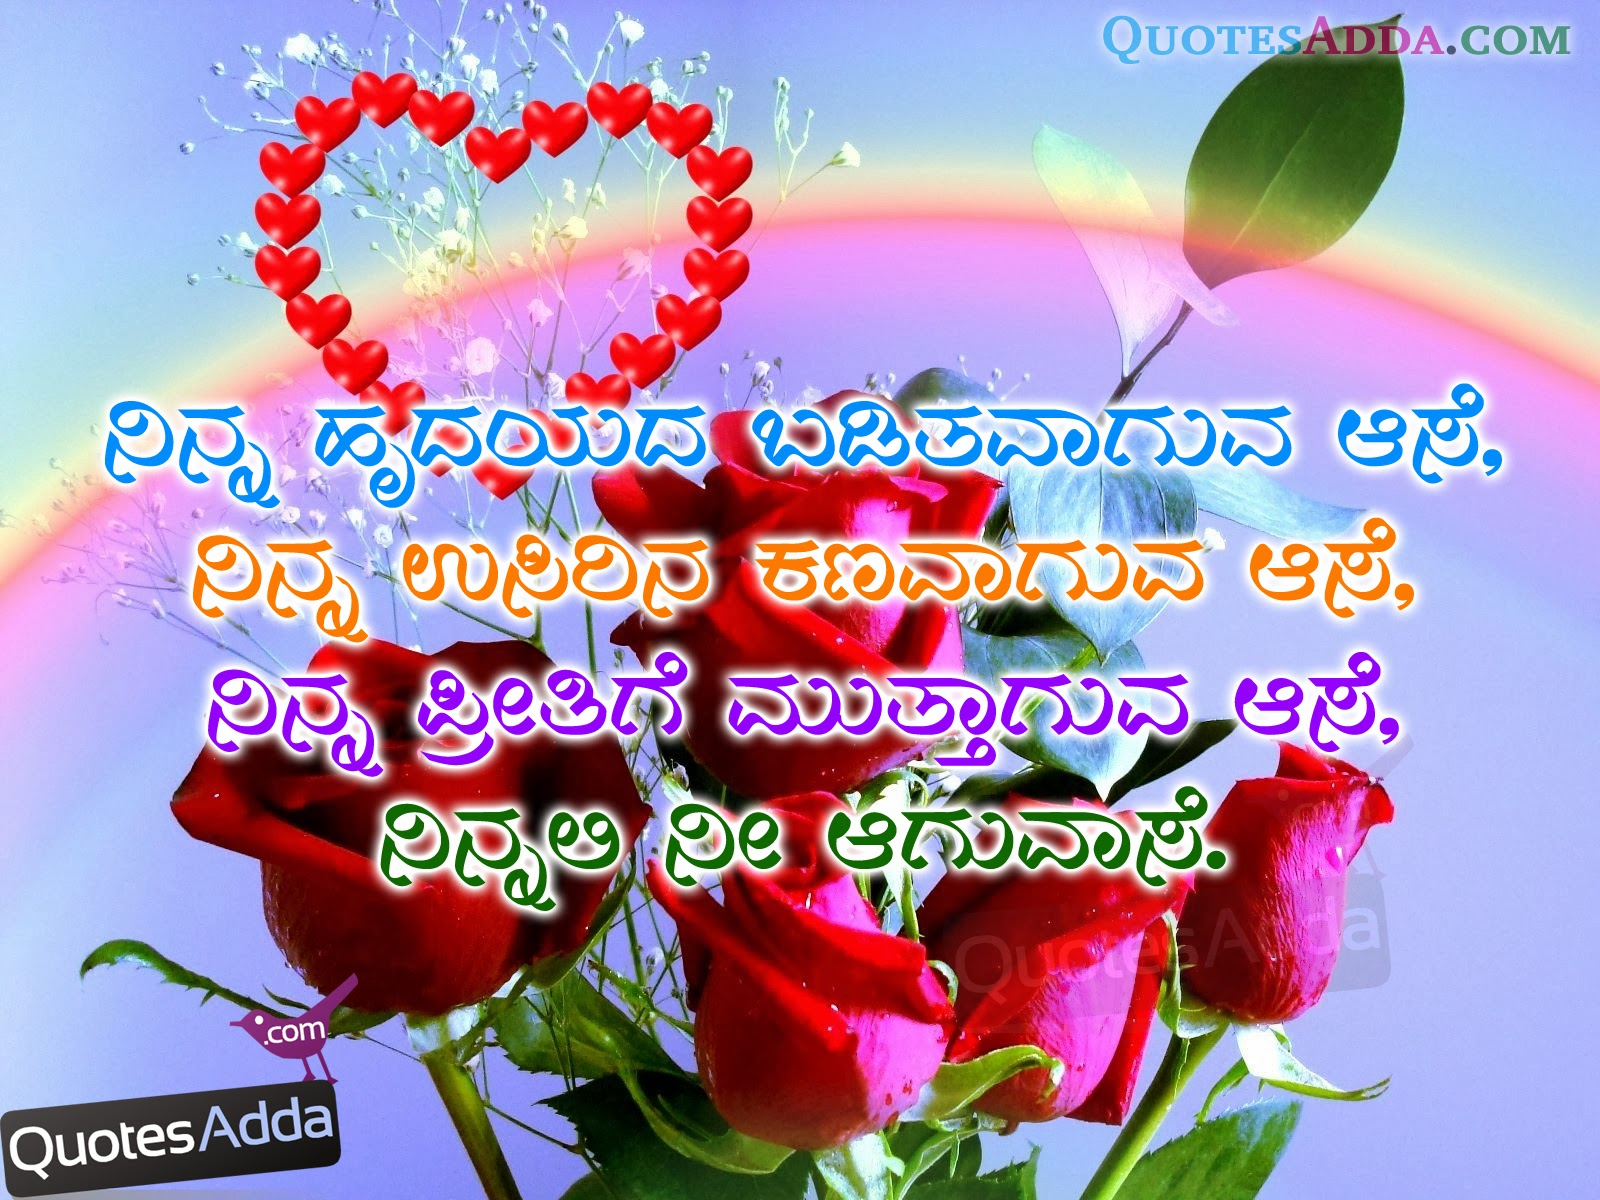 Love Wallpaper In Kannada : Kannada Love Quotes 2 Kannada Love Images QuotesAdda.com Telugu Quotes Tamil Quotes ...